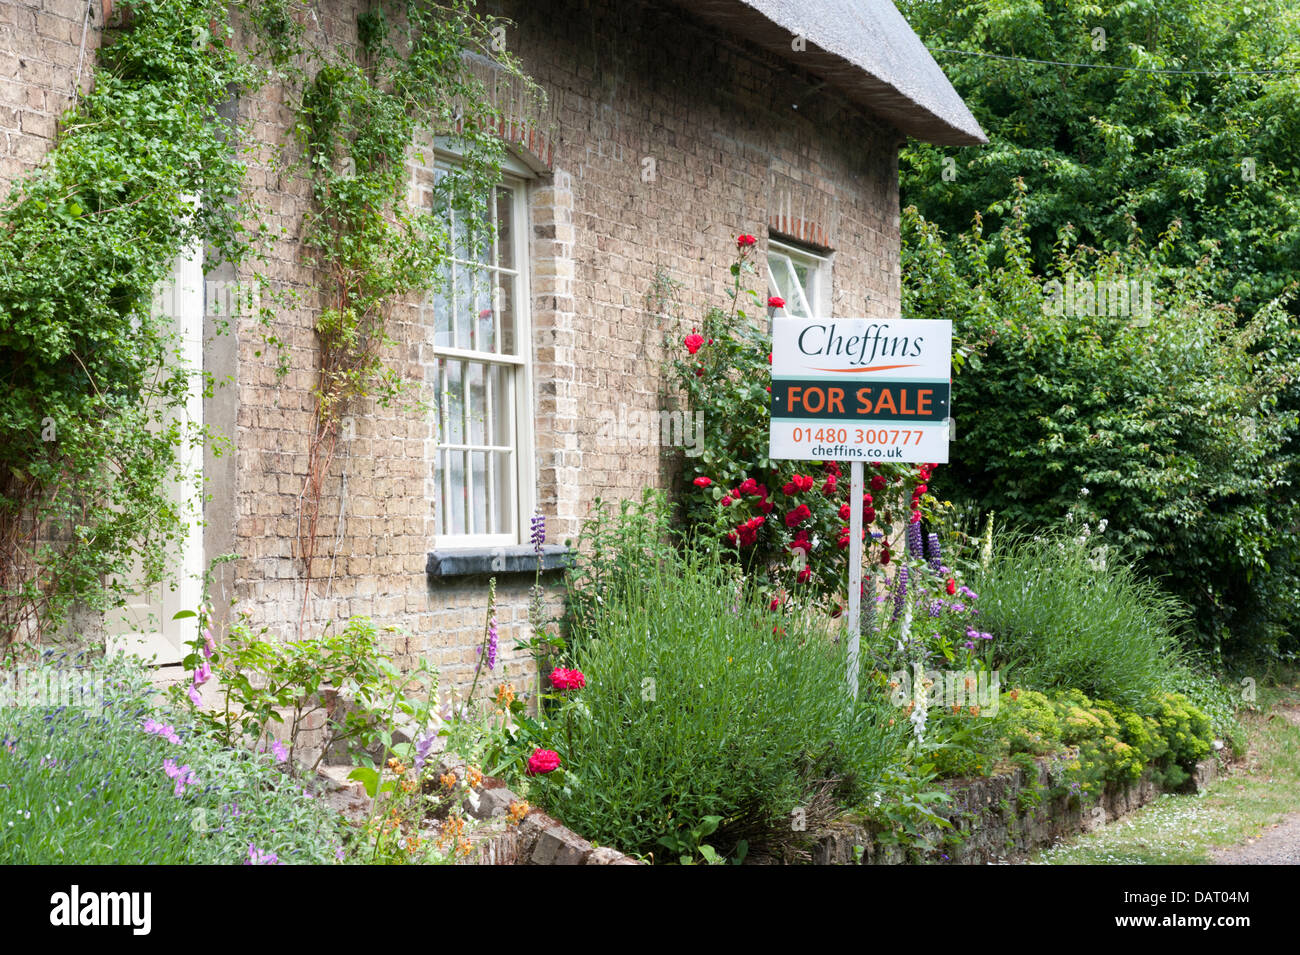 An old thatched cottage country house for sale in Cambridgeshire UK with for sale board outside - Stock Image